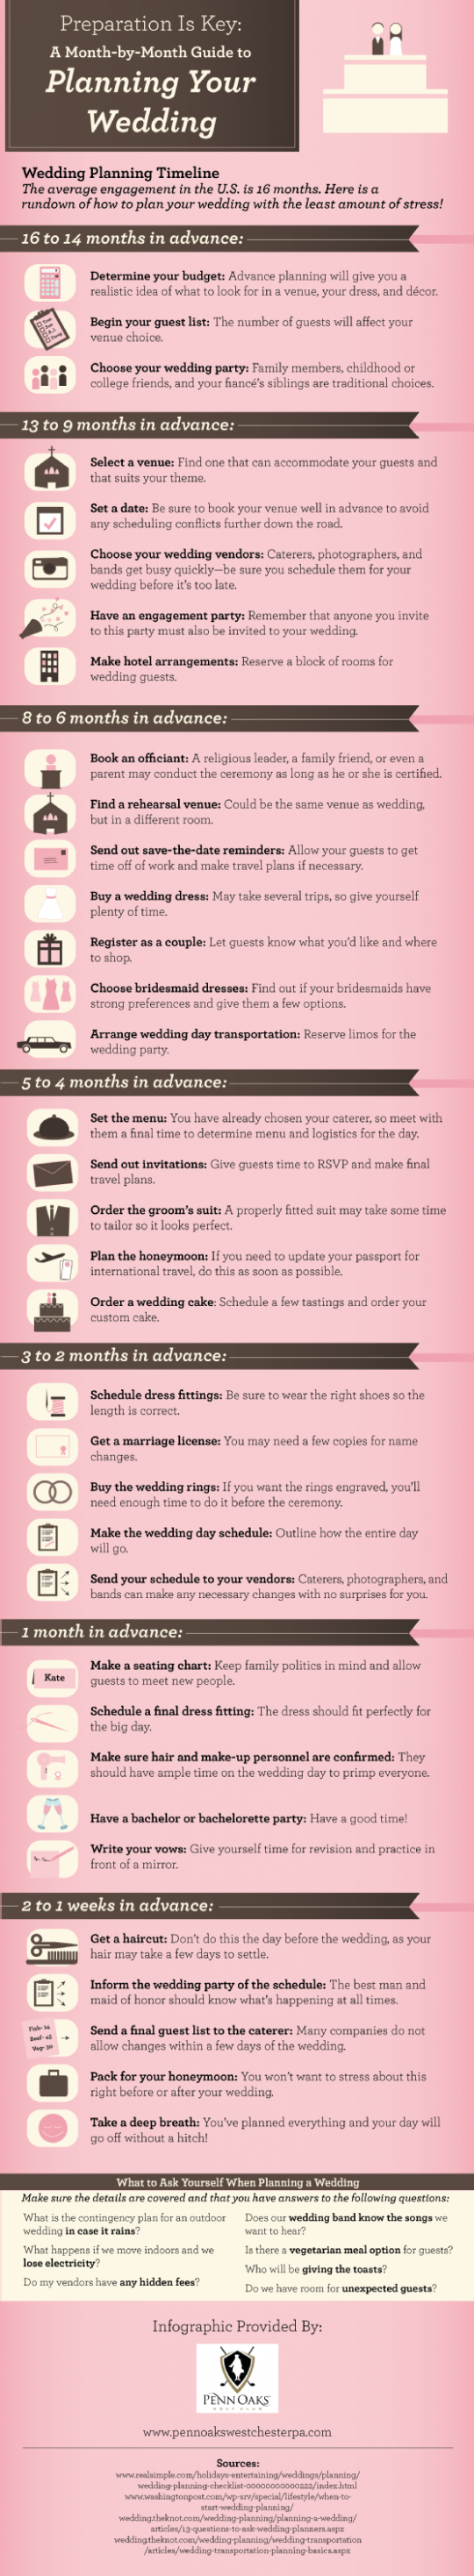 Wedding Planning Checklist Infographic | Wedding Planning Checklist A Complete Guide On How To Plan Your Big Day